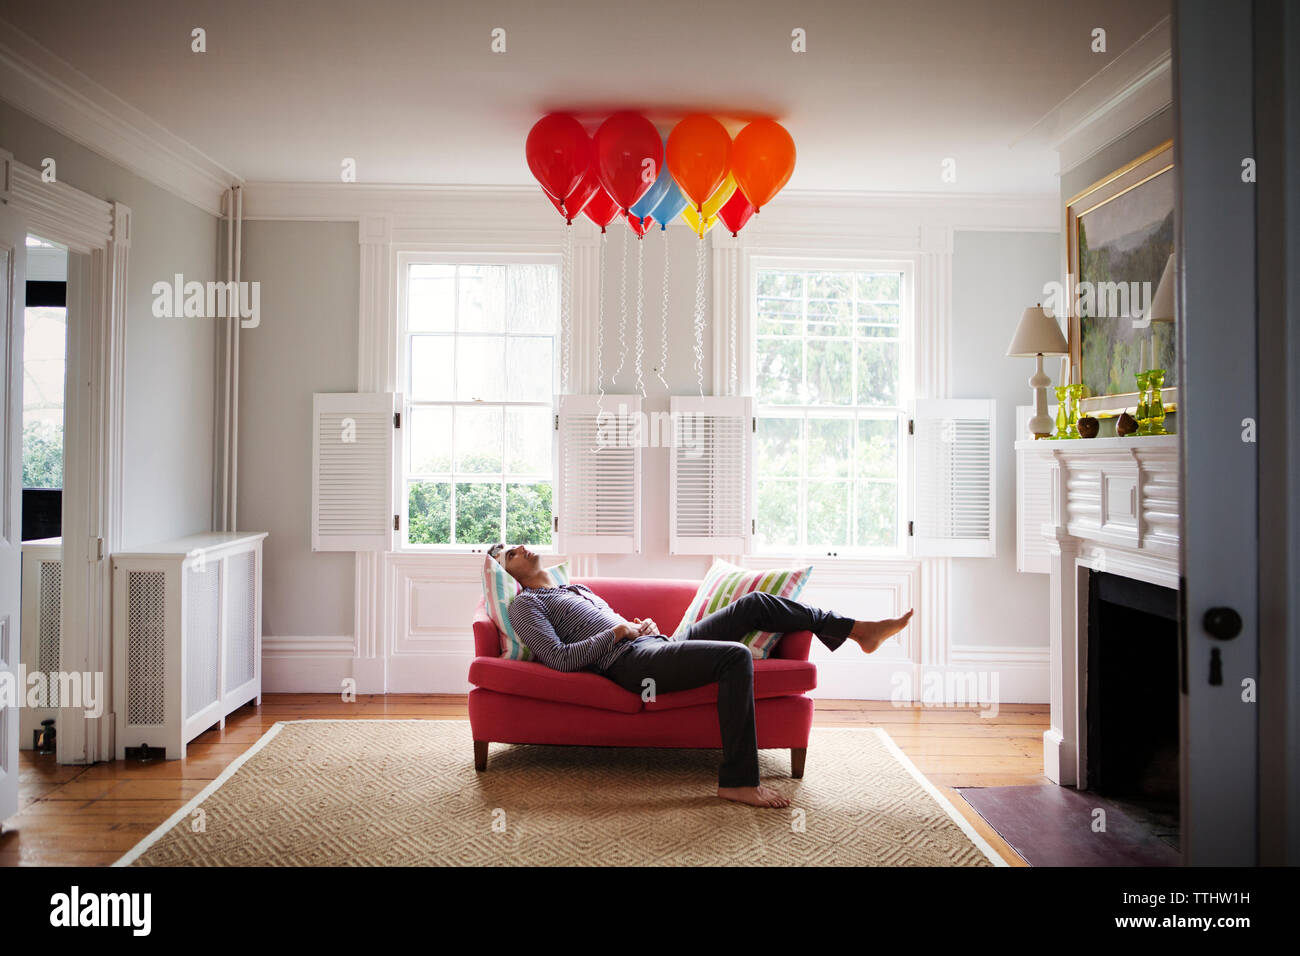 Man looking at helium balloons while lying on sofa - Stock Image